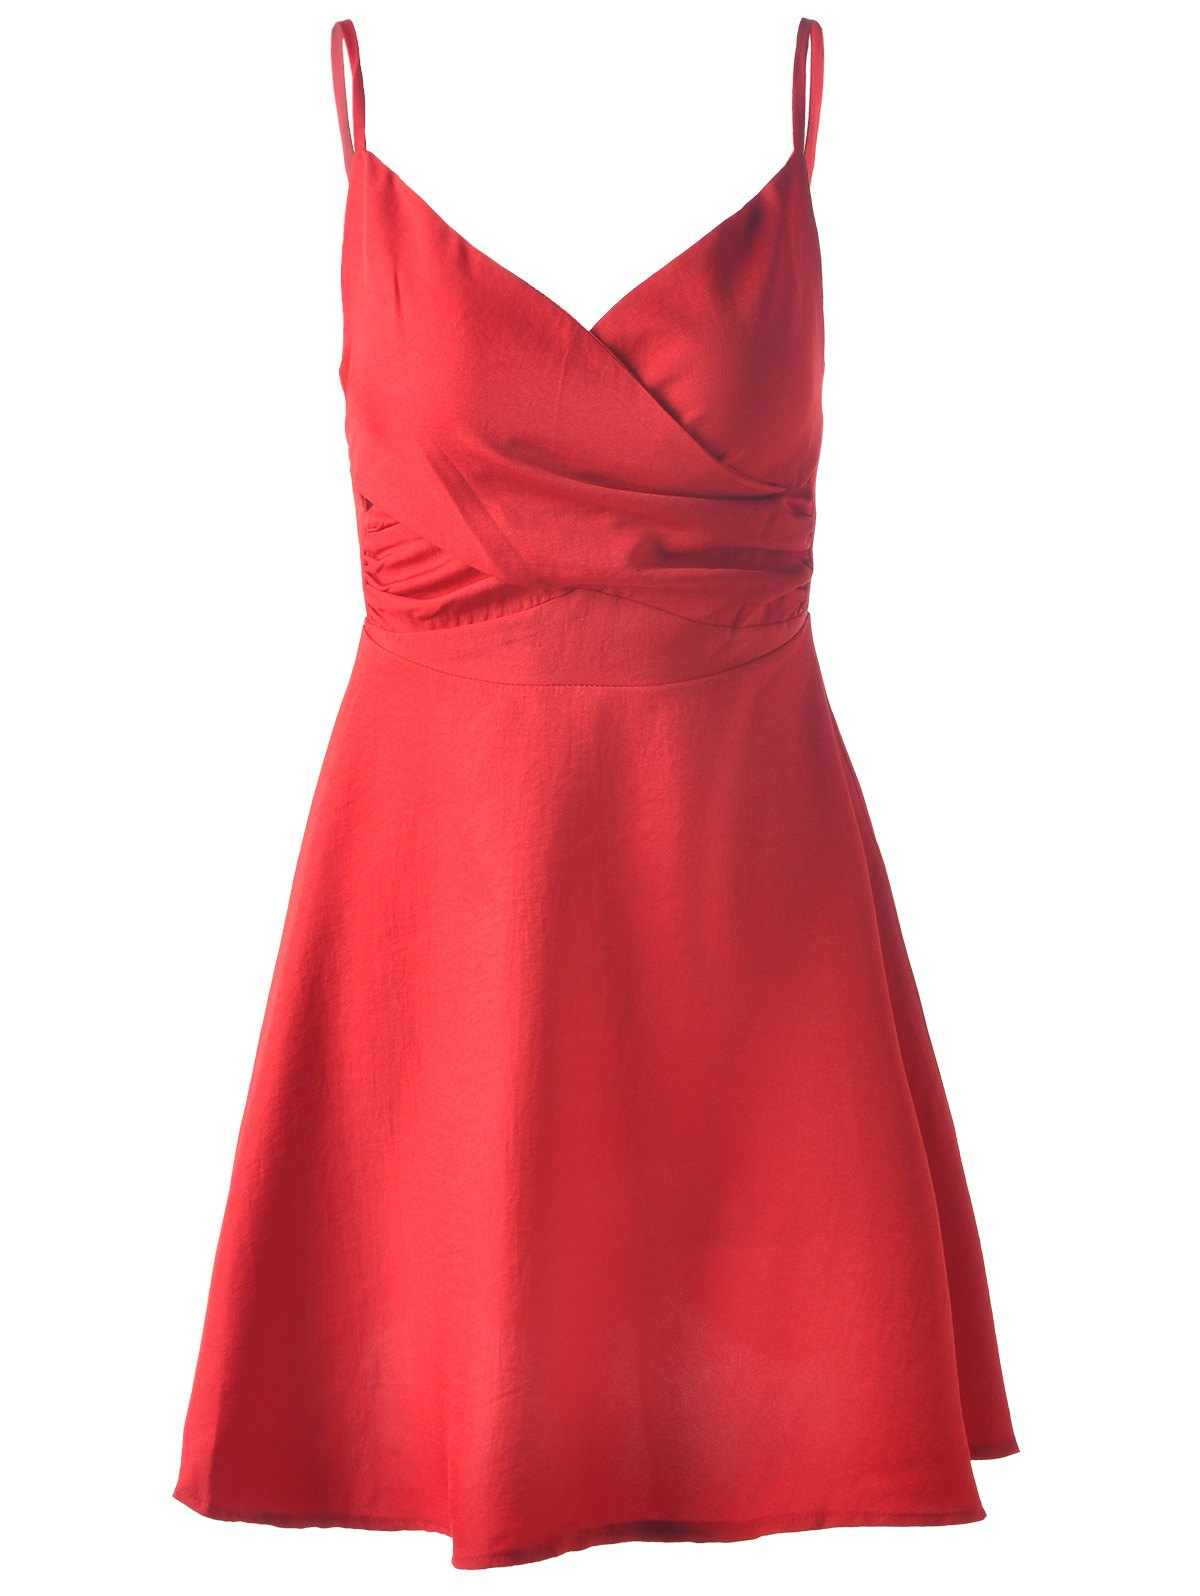 Stylish Women's Overlapping  Spaghetti Strap Sleeveless Knee-Length Dress - DEEP RED M